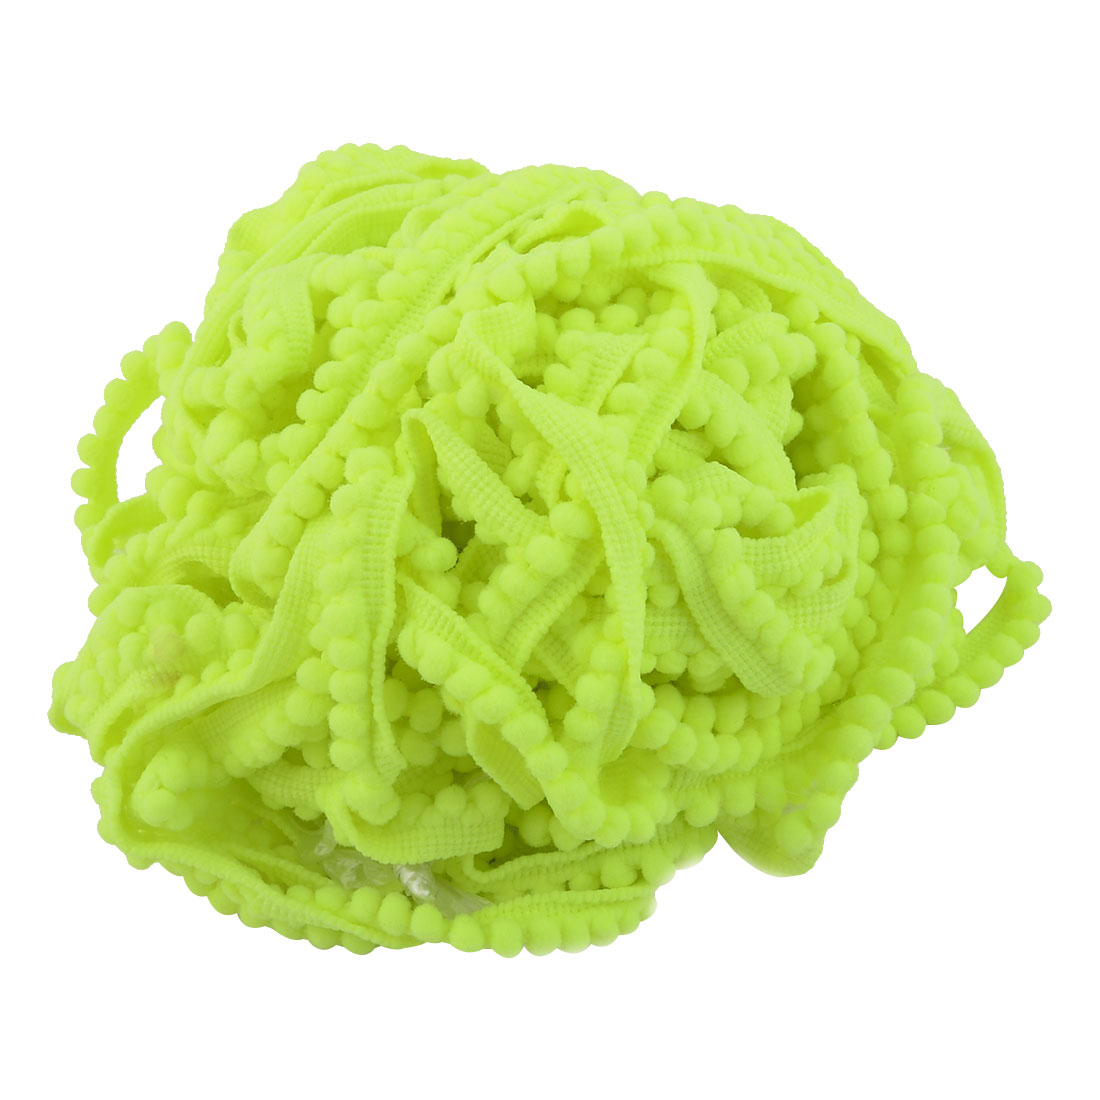 Home Cotton Blends DIY Sewing Clothing Shirt Dress Ornament Fringe Trimming Green Yellow